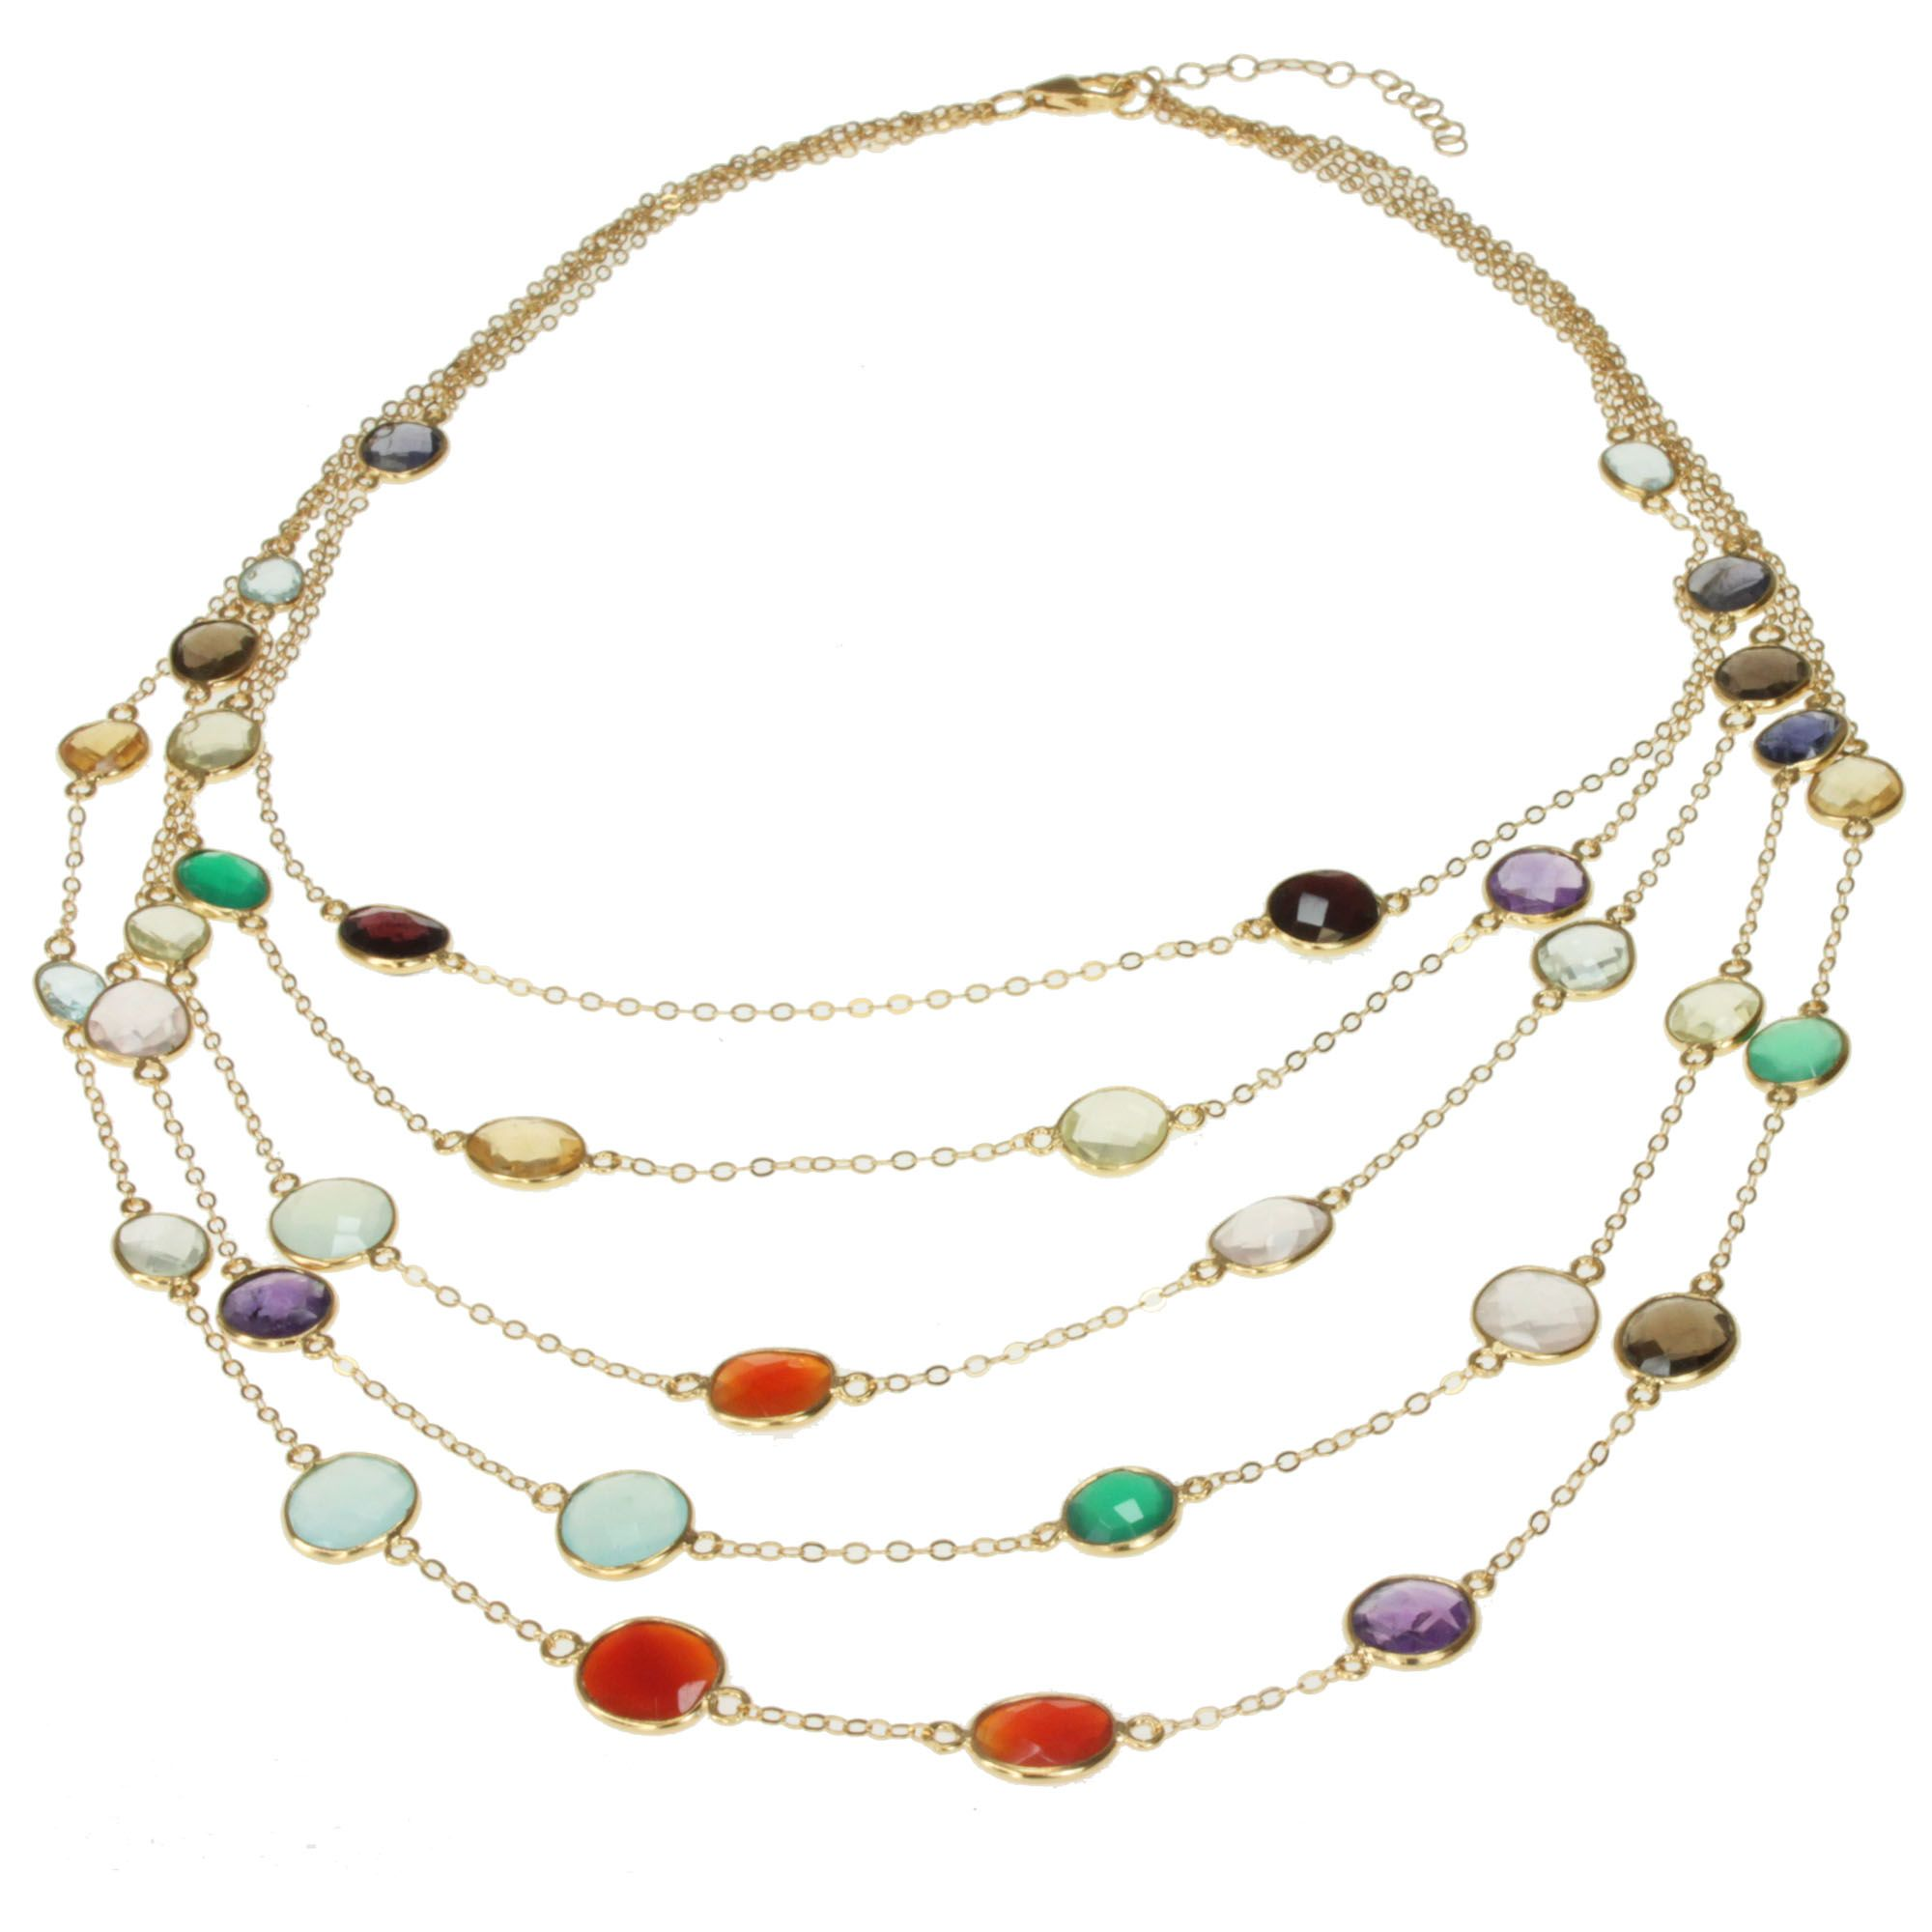 mix make multi wax statement embrace ns other with like formal casual stone strands exotic necklaces for rope gemstone handcrafted products this details necklace a no handmade something trendy aeravida great look and create